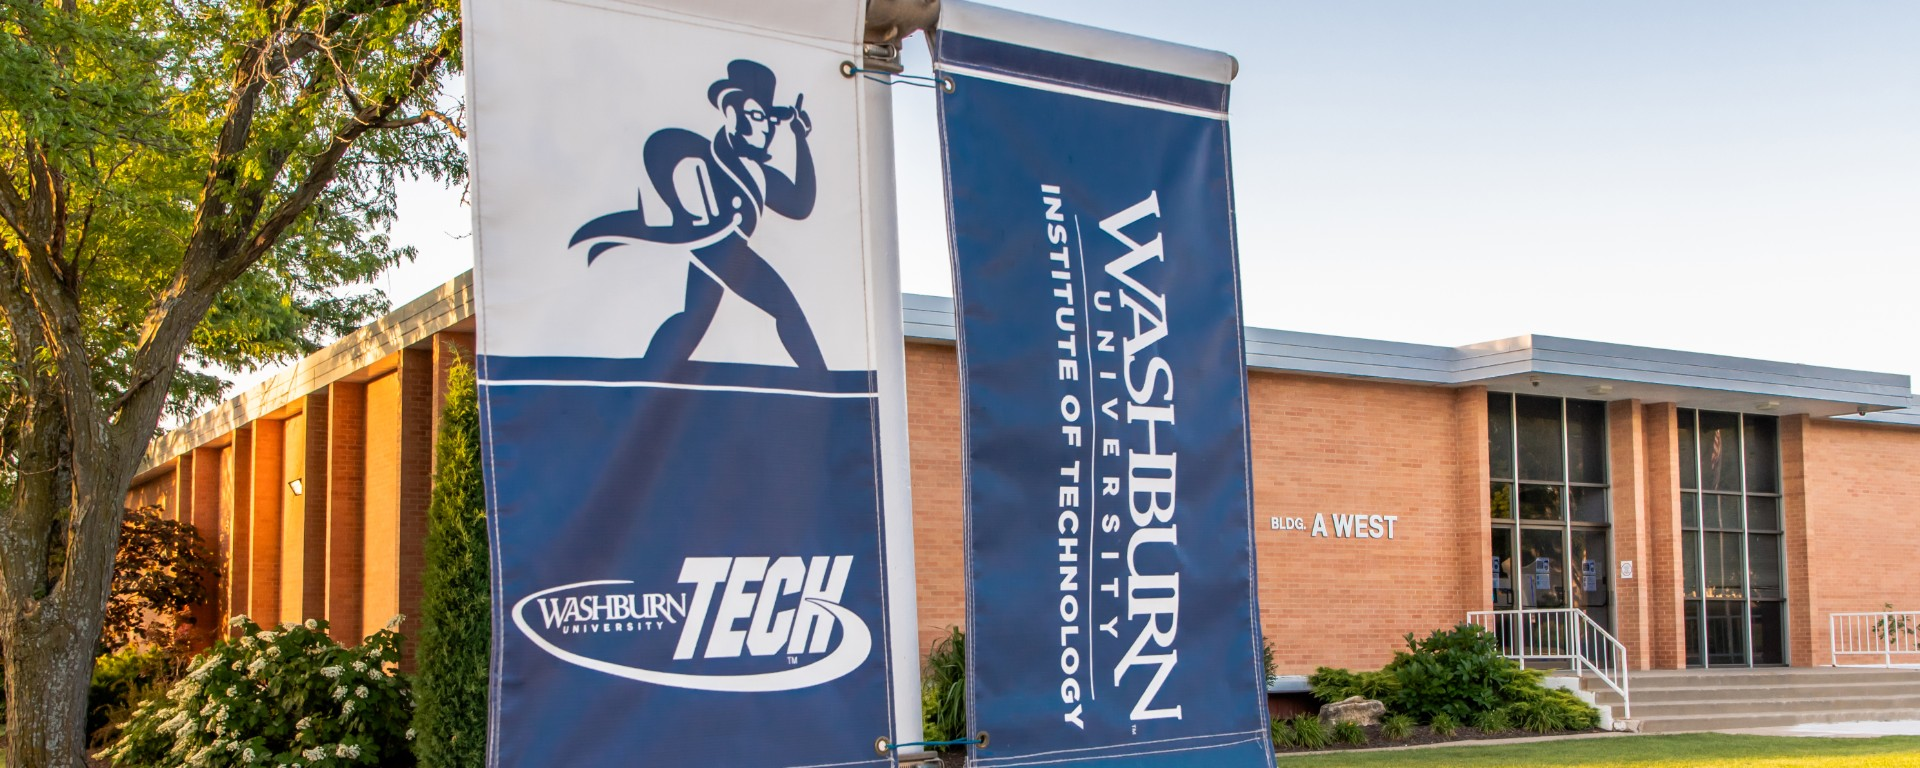 Washburn Tech exterior logo with grasses in foreground